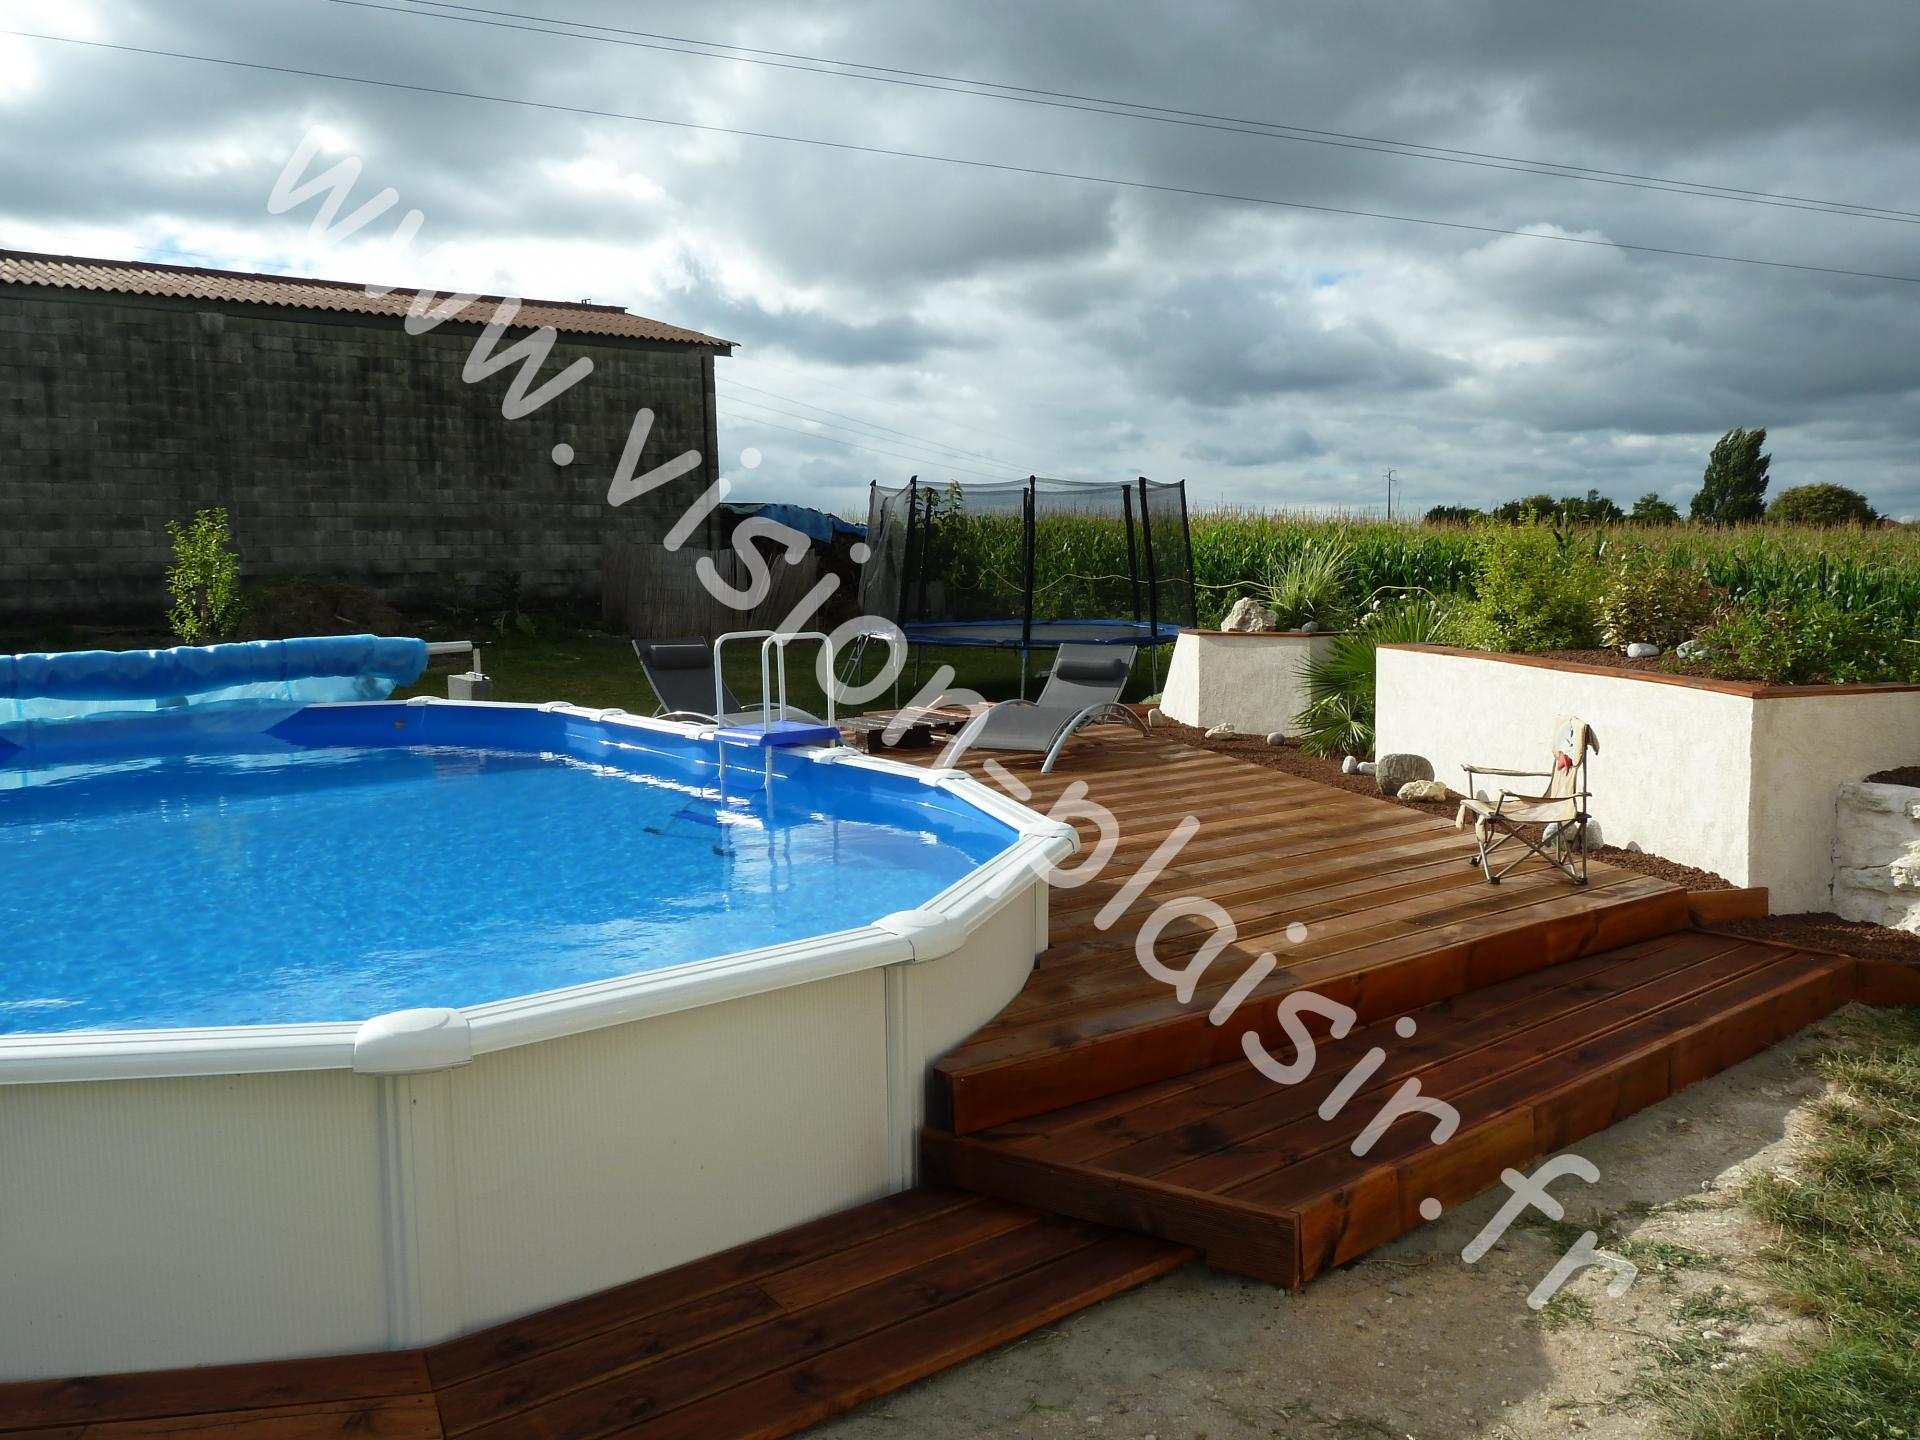 Blog de vision plaisir piscine hors sol semi enterr e for Installation piscine enterree